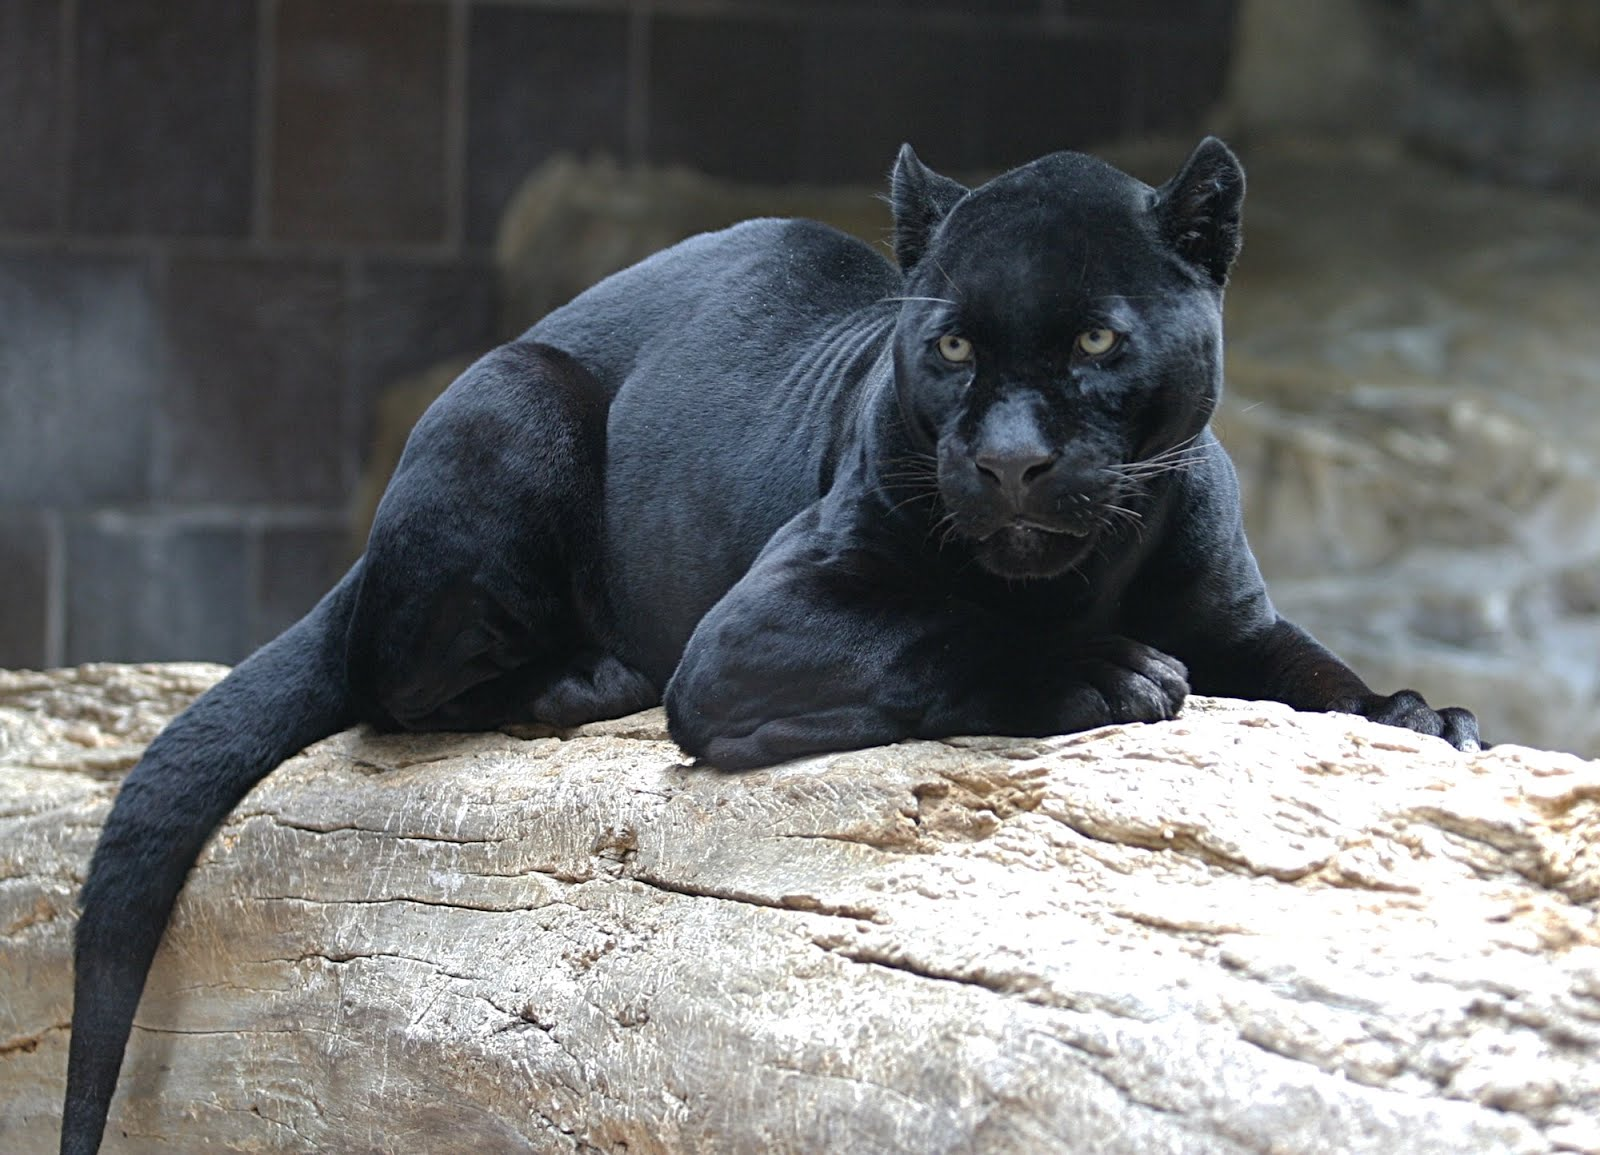 Cat Black Jaguar 1600x1155 Wallpaper Teahub Io